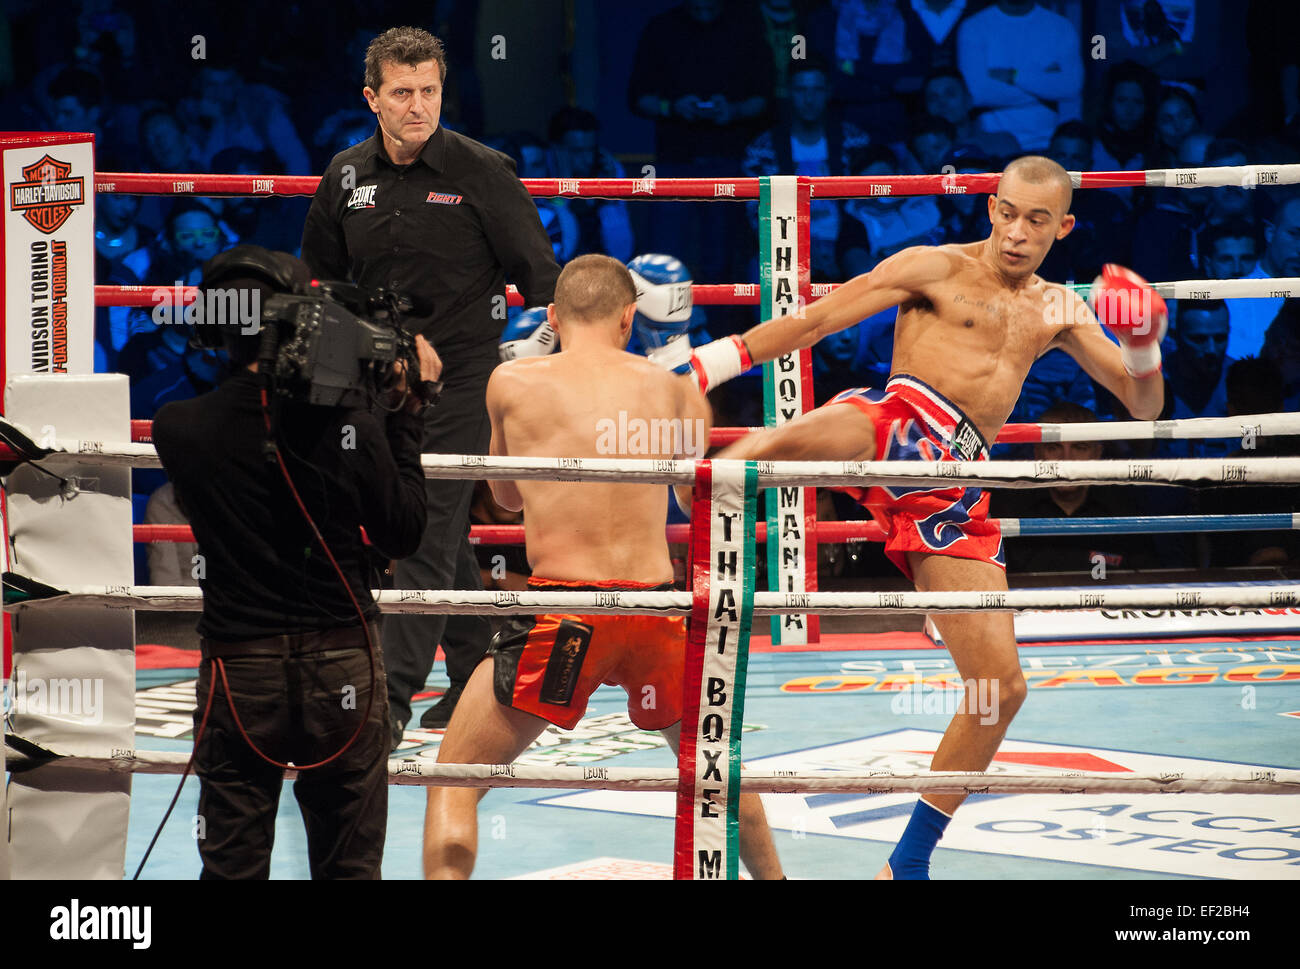 Italy Piedmont Torino Palasport Palaruffini 2015 24th January  2015 Thai Box Mania Event - Word Title Champ. WKN - Stock Image